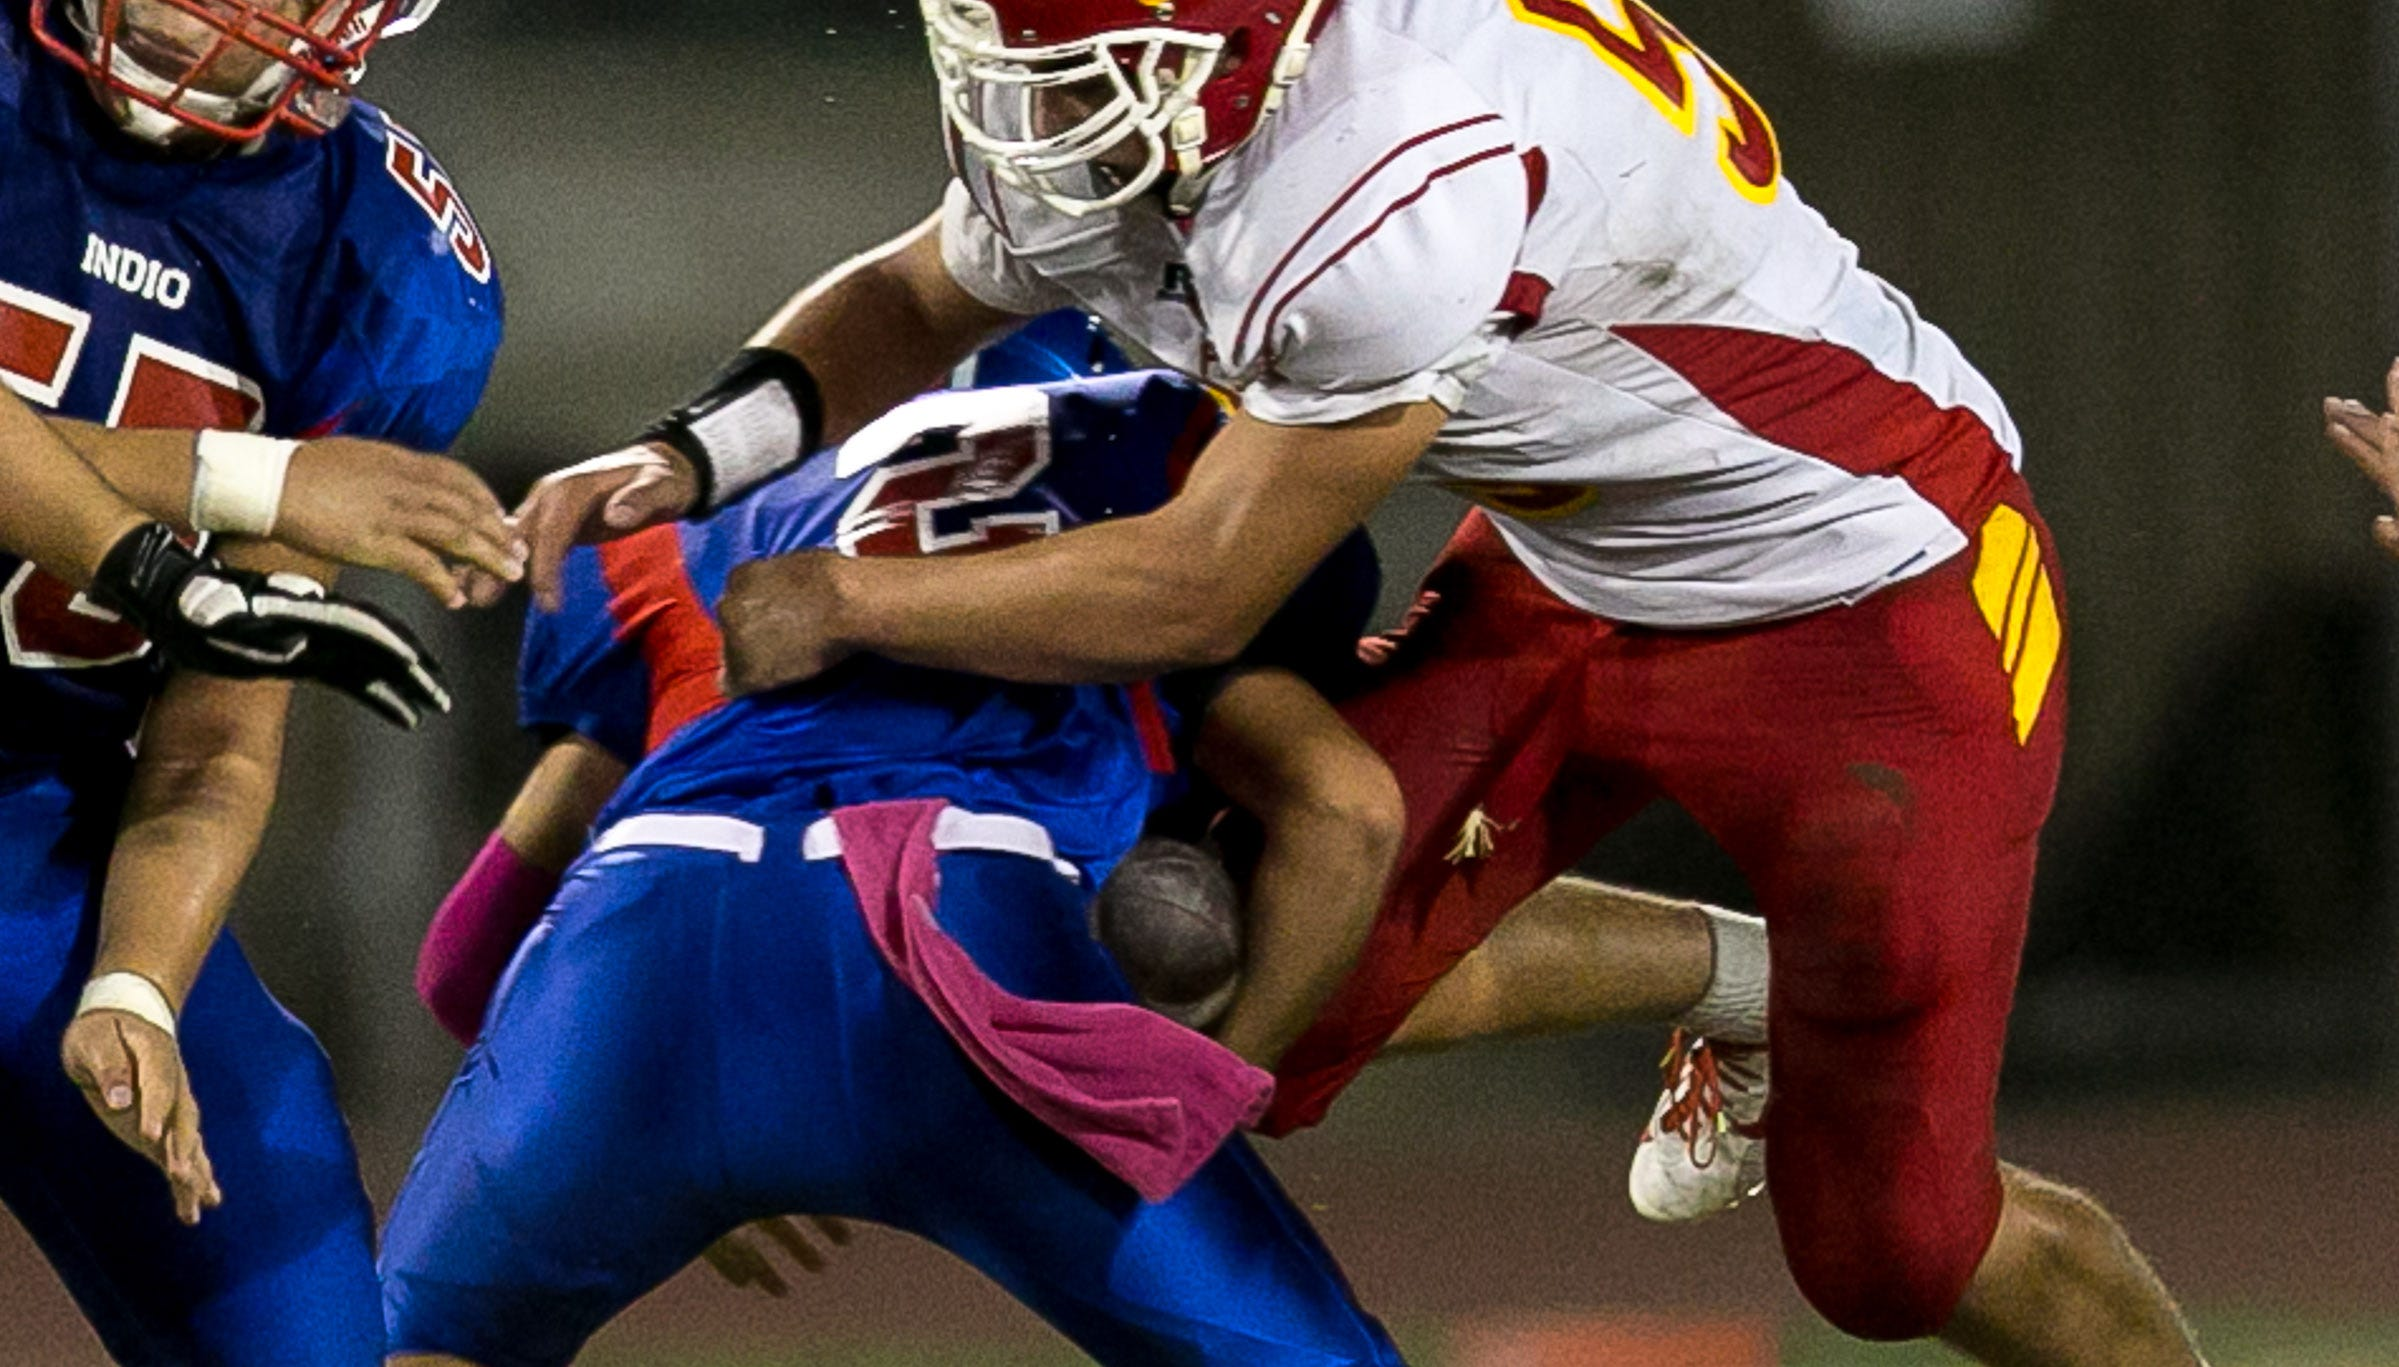 Will Emmett, former Aztecs football star who died at age 20, remembered at Palm Desert High